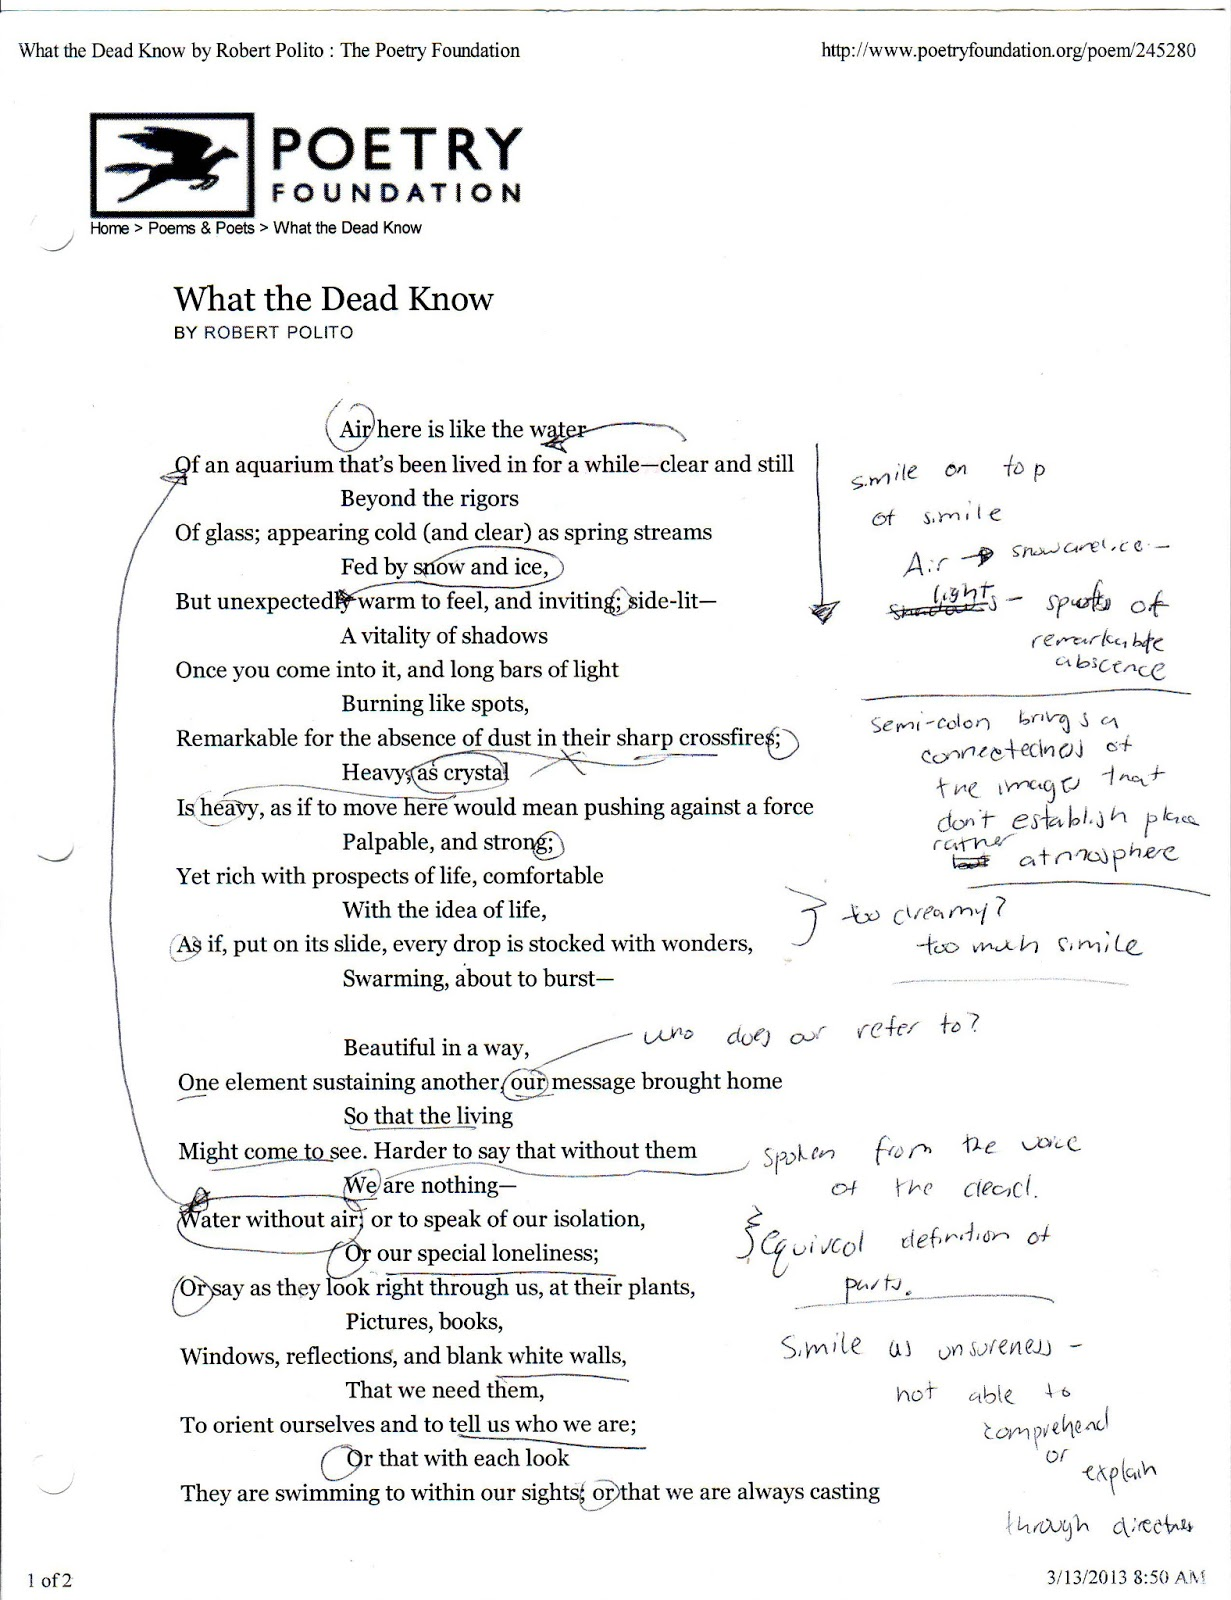 robert frost poem analysis Robert frost: poems study guide contains a biography of poet robert frost,  literature essays, quiz questions, major themes, characters, and a.